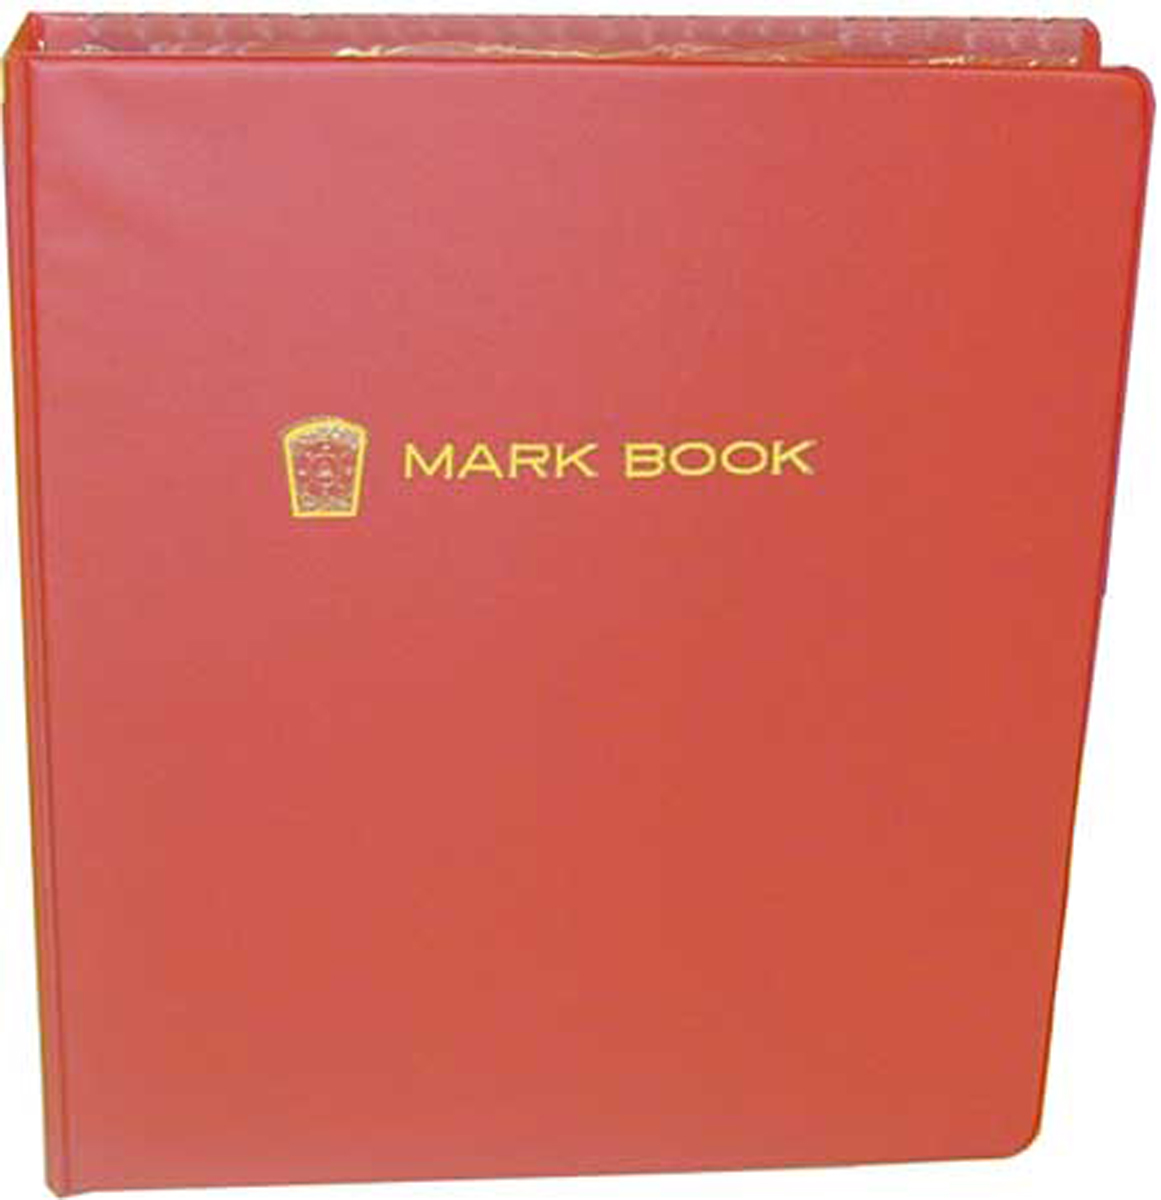 Loose Leaf Mark Book